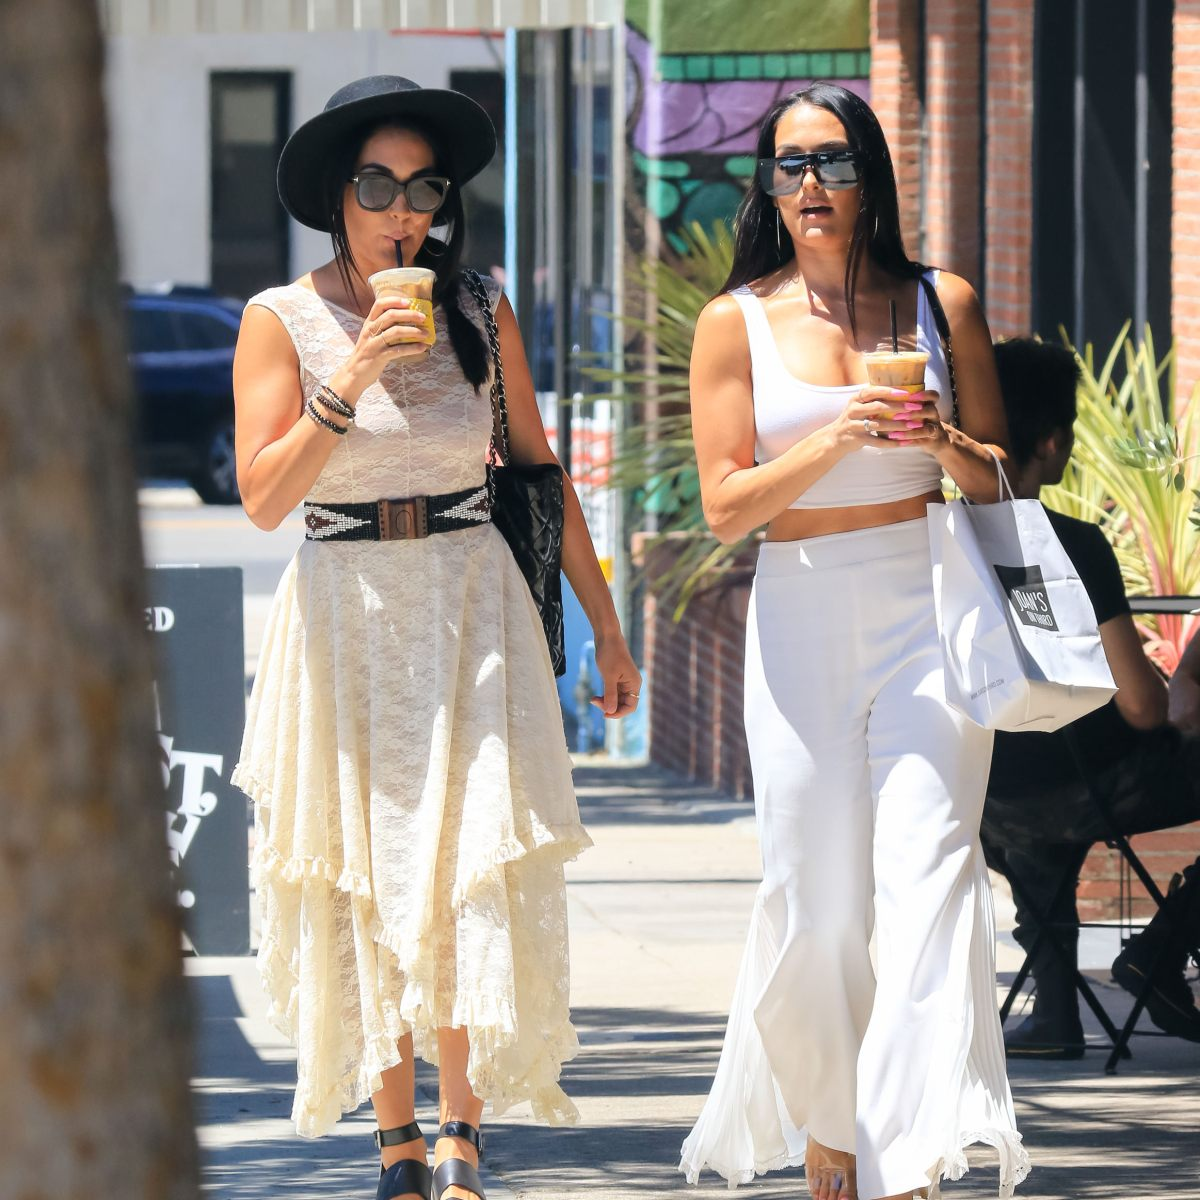 Nikki and Brie Bella Look Like Boho Goddesses While Grabbing Coffee in L.A. — See Photos!